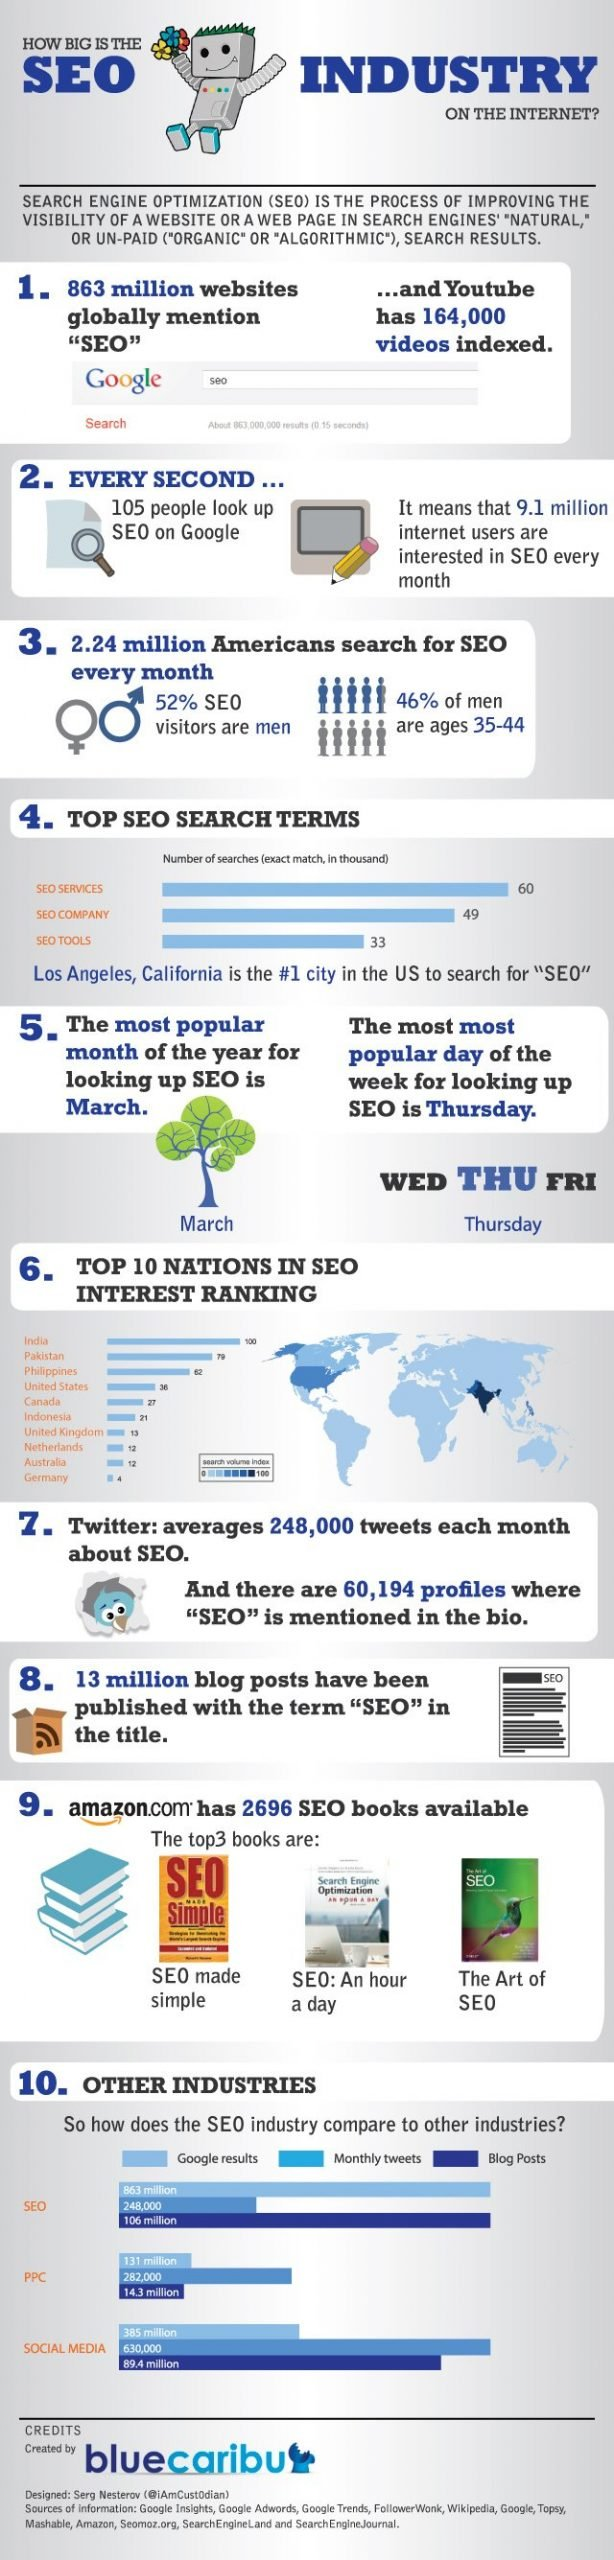 SEO Industry Infographic